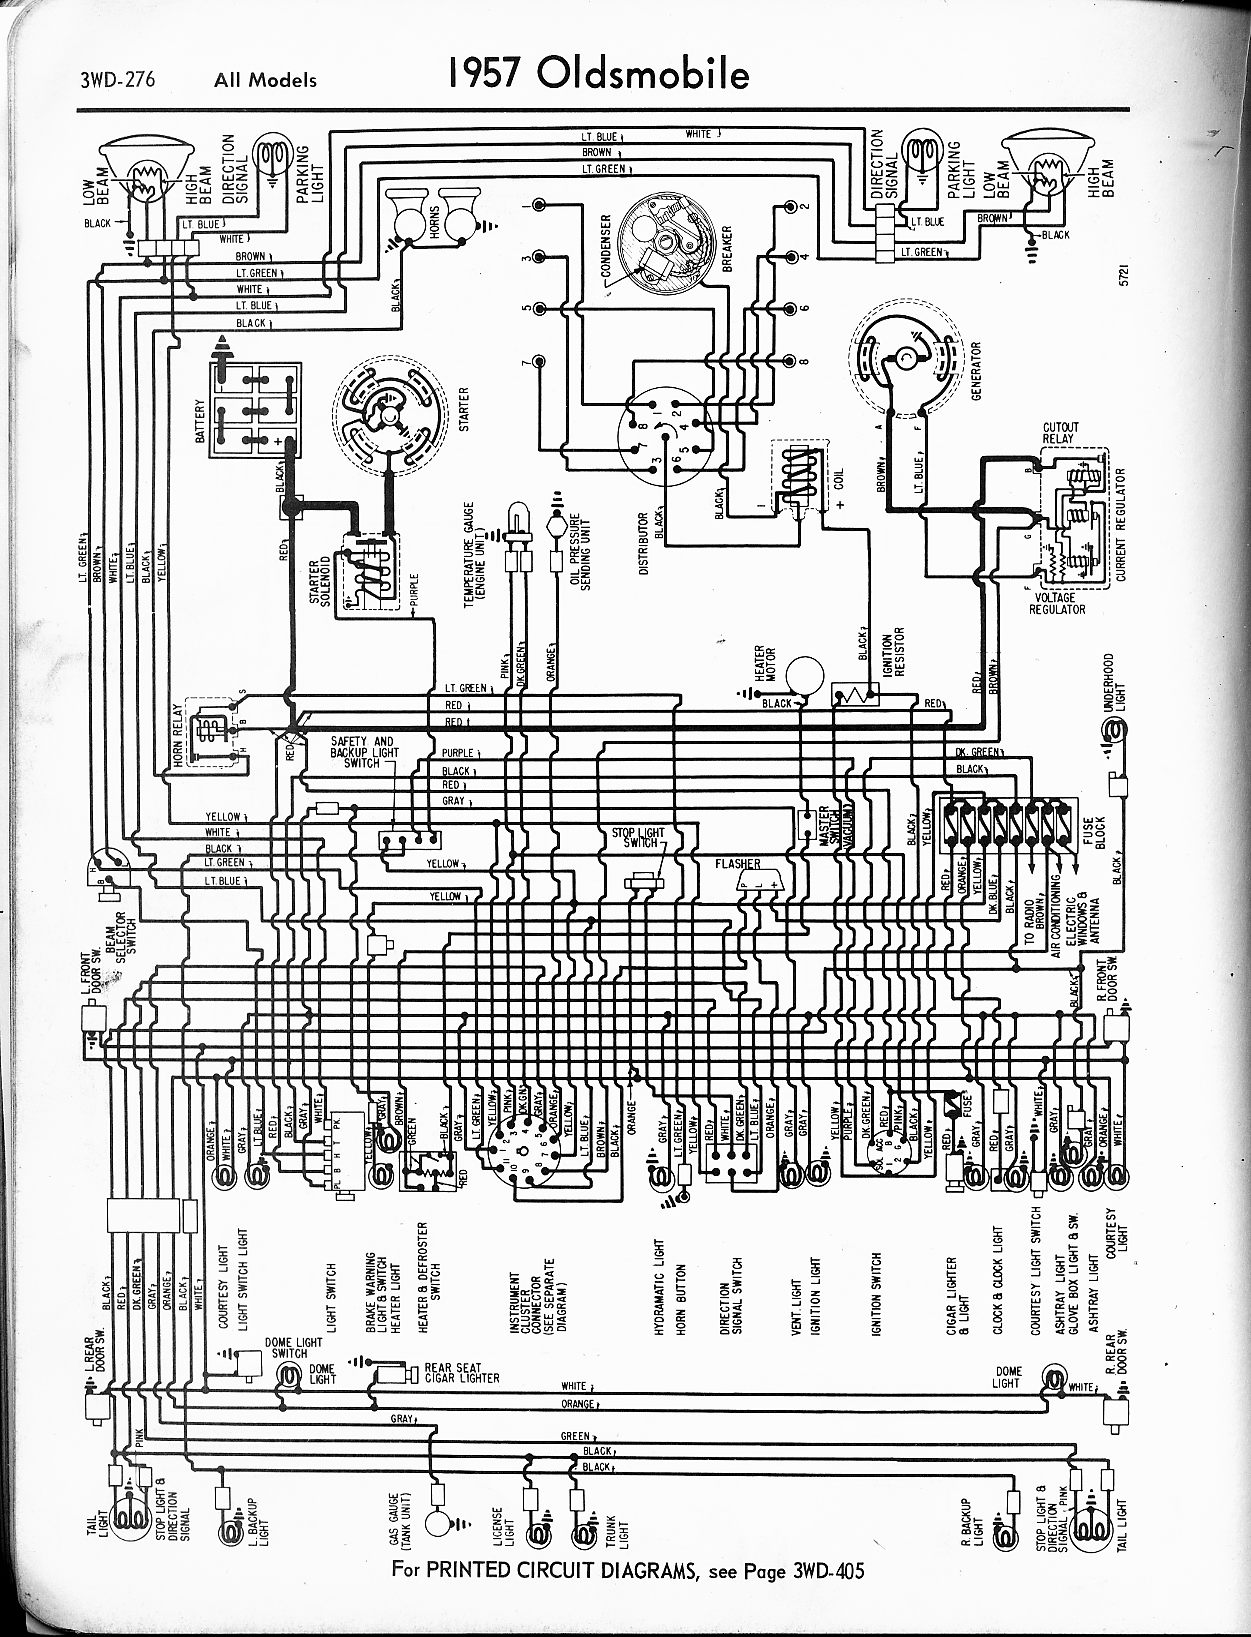 hight resolution of 88 oldsmobile wiring diagram diagrams the old wiring diagram name 1997 oldsmobile 88 blower wiring diagram free download